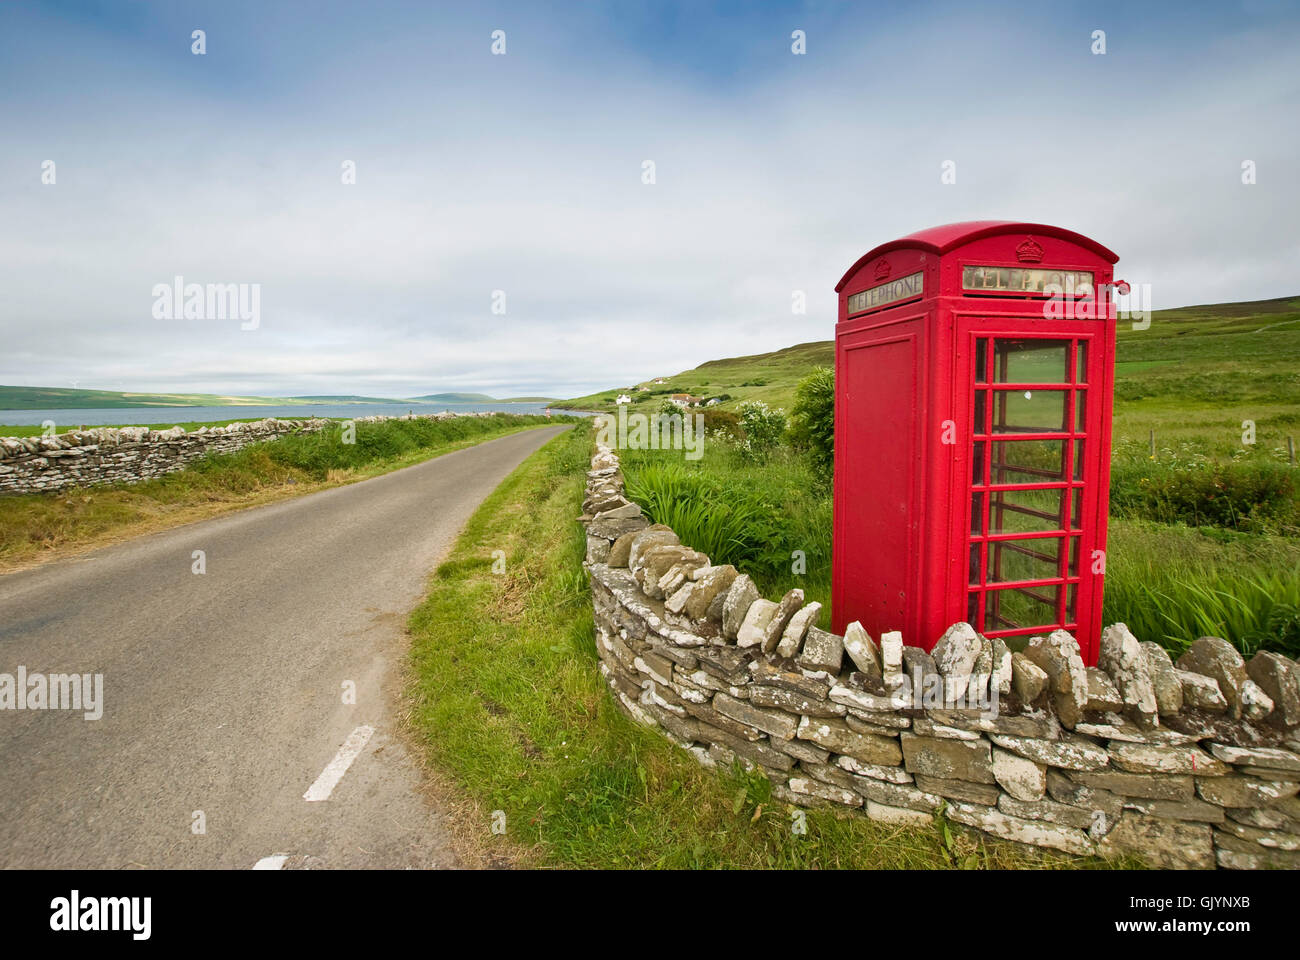 scotland british scottish - Stock Image